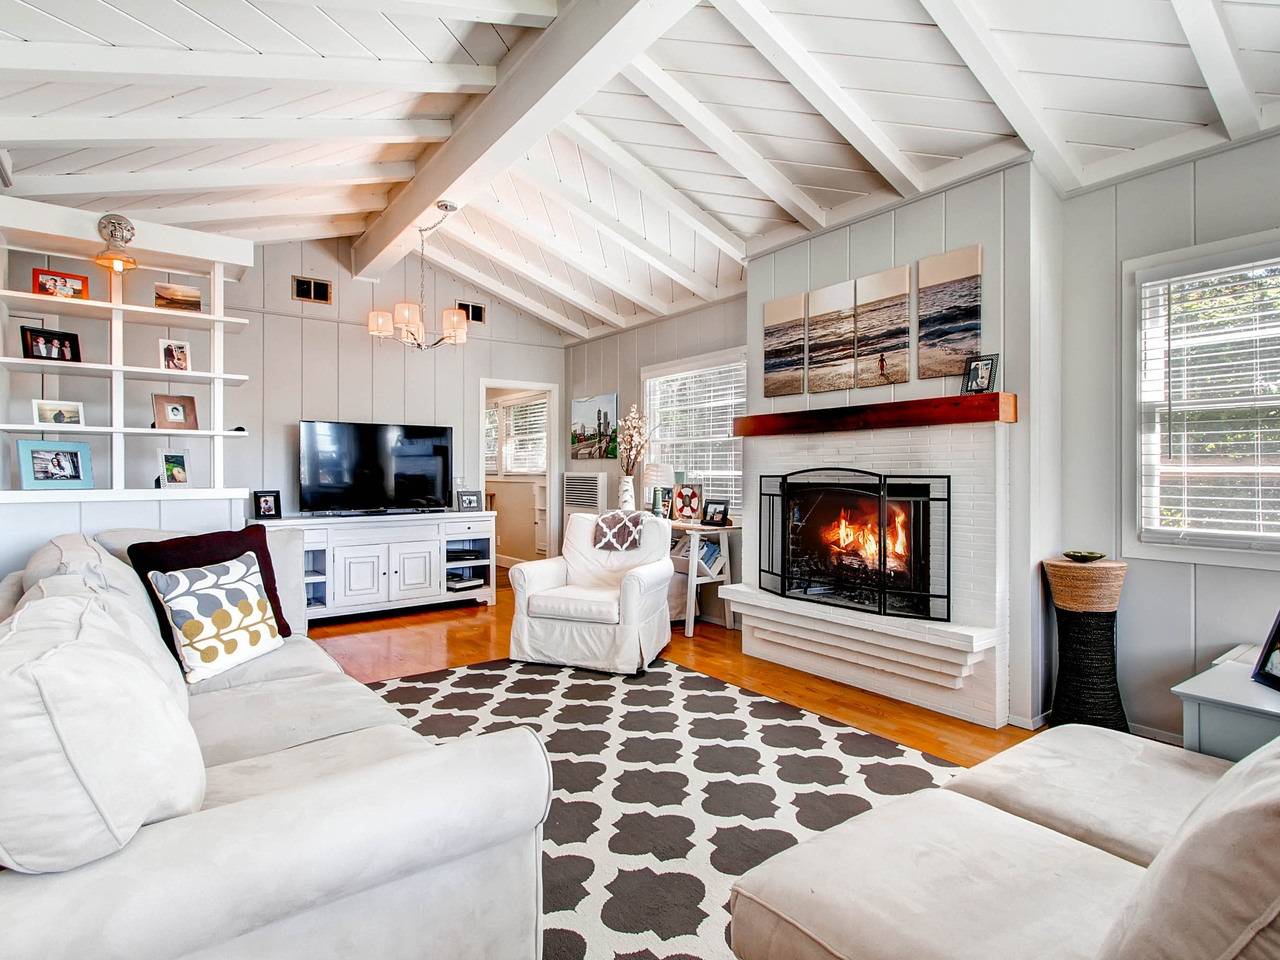 Main Photo: LA JOLLA House for sale : 4 bedrooms : 5457 Bellevue Ave